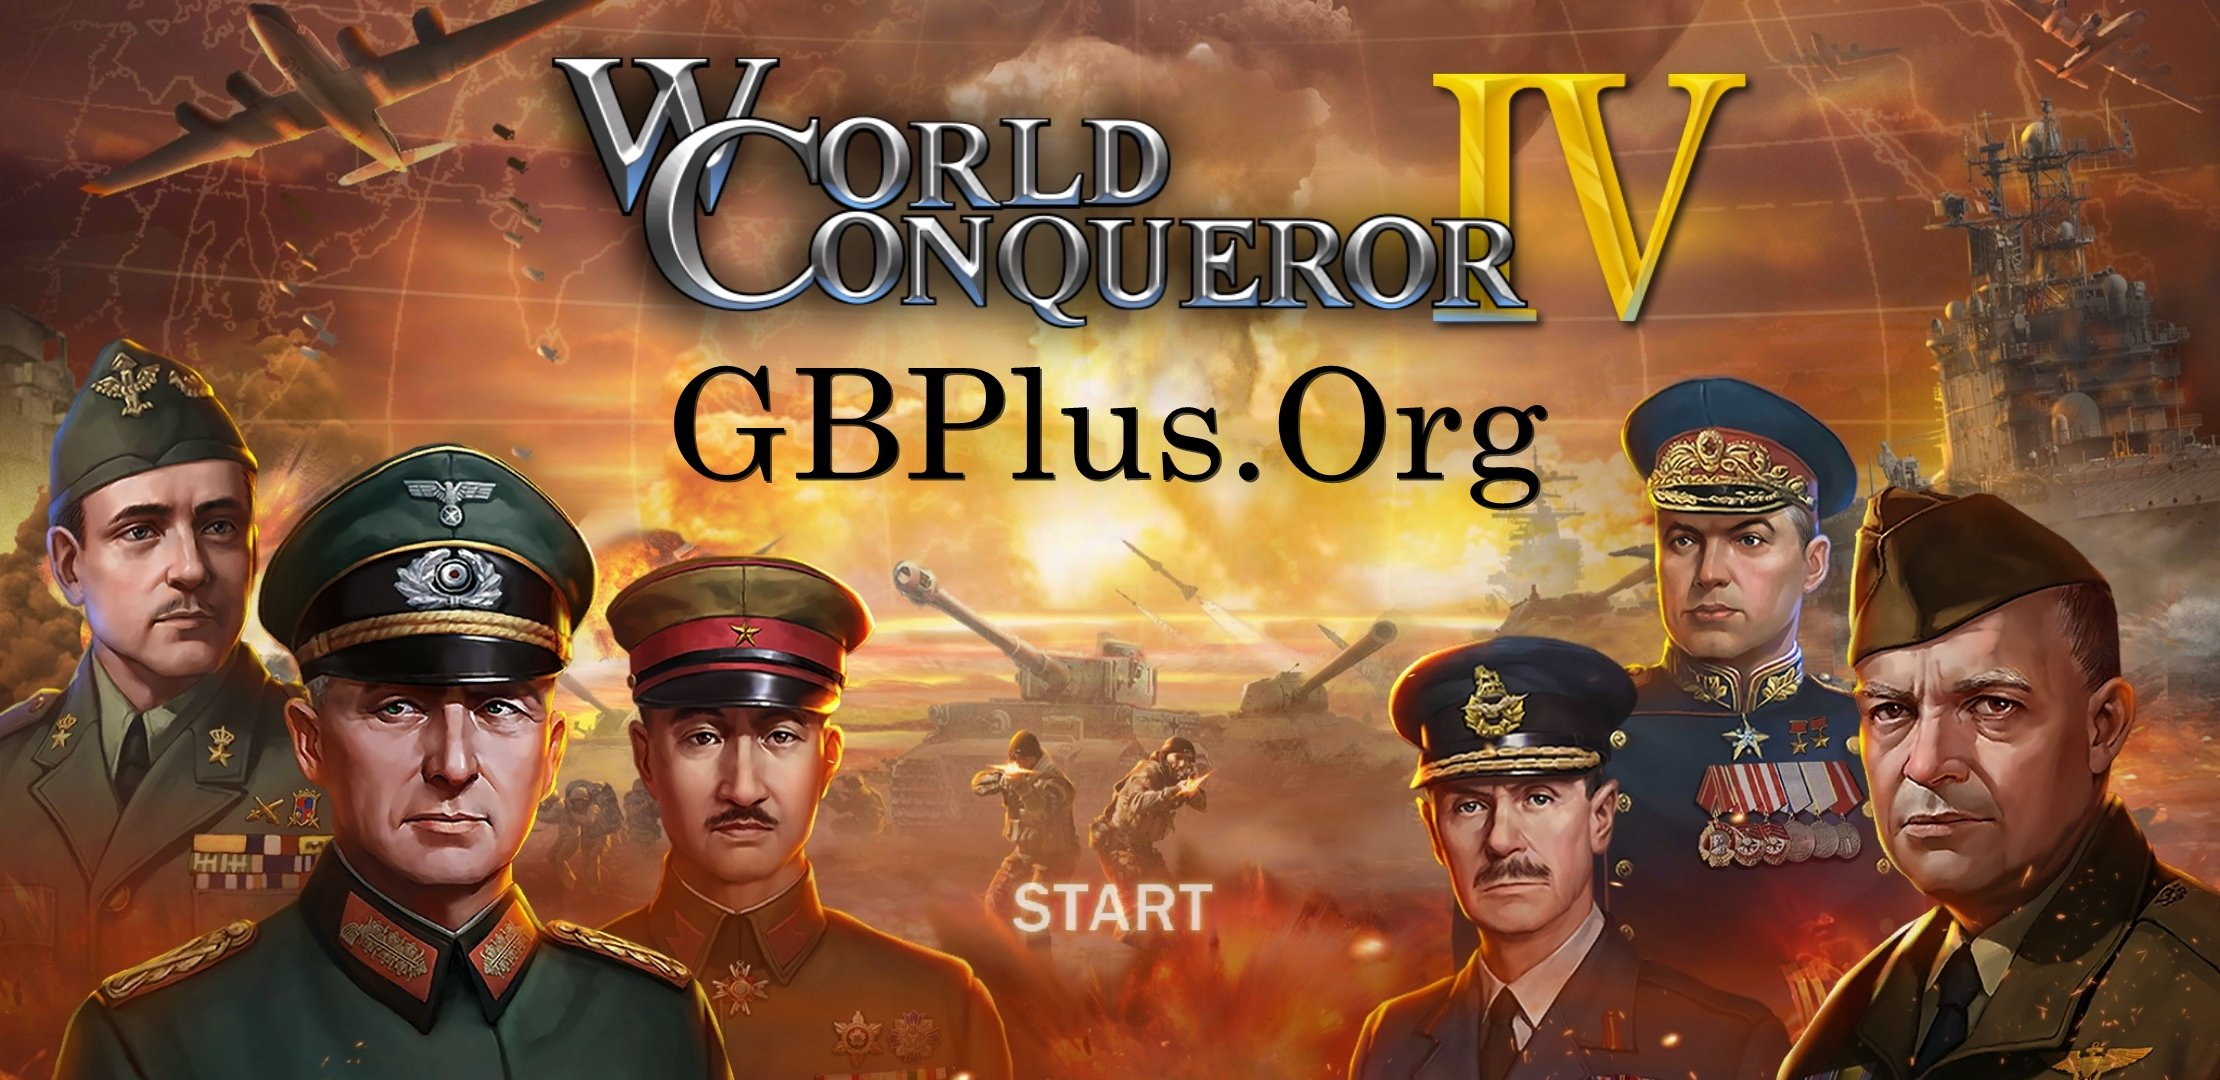 World Conqueror 4 Mod Apk Download 1.2.54 for Android